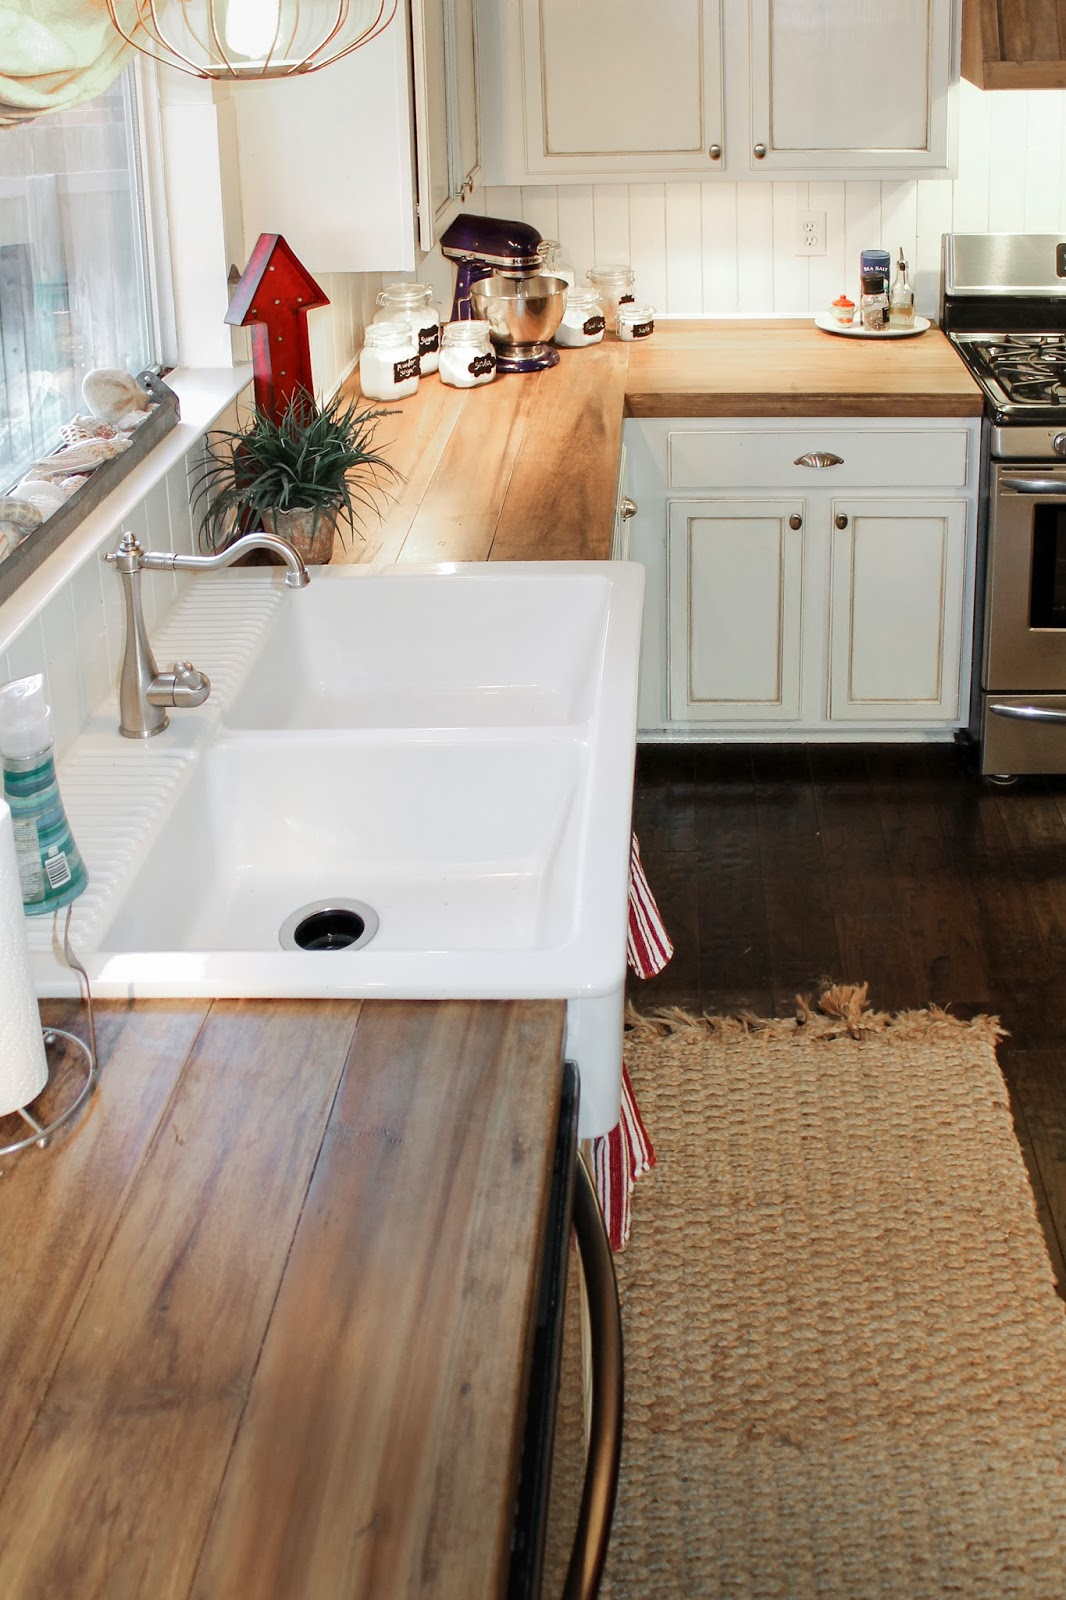 countertop bring finish warmth island countertops shaped any for kitchen clean modern u style wood a spagnol to